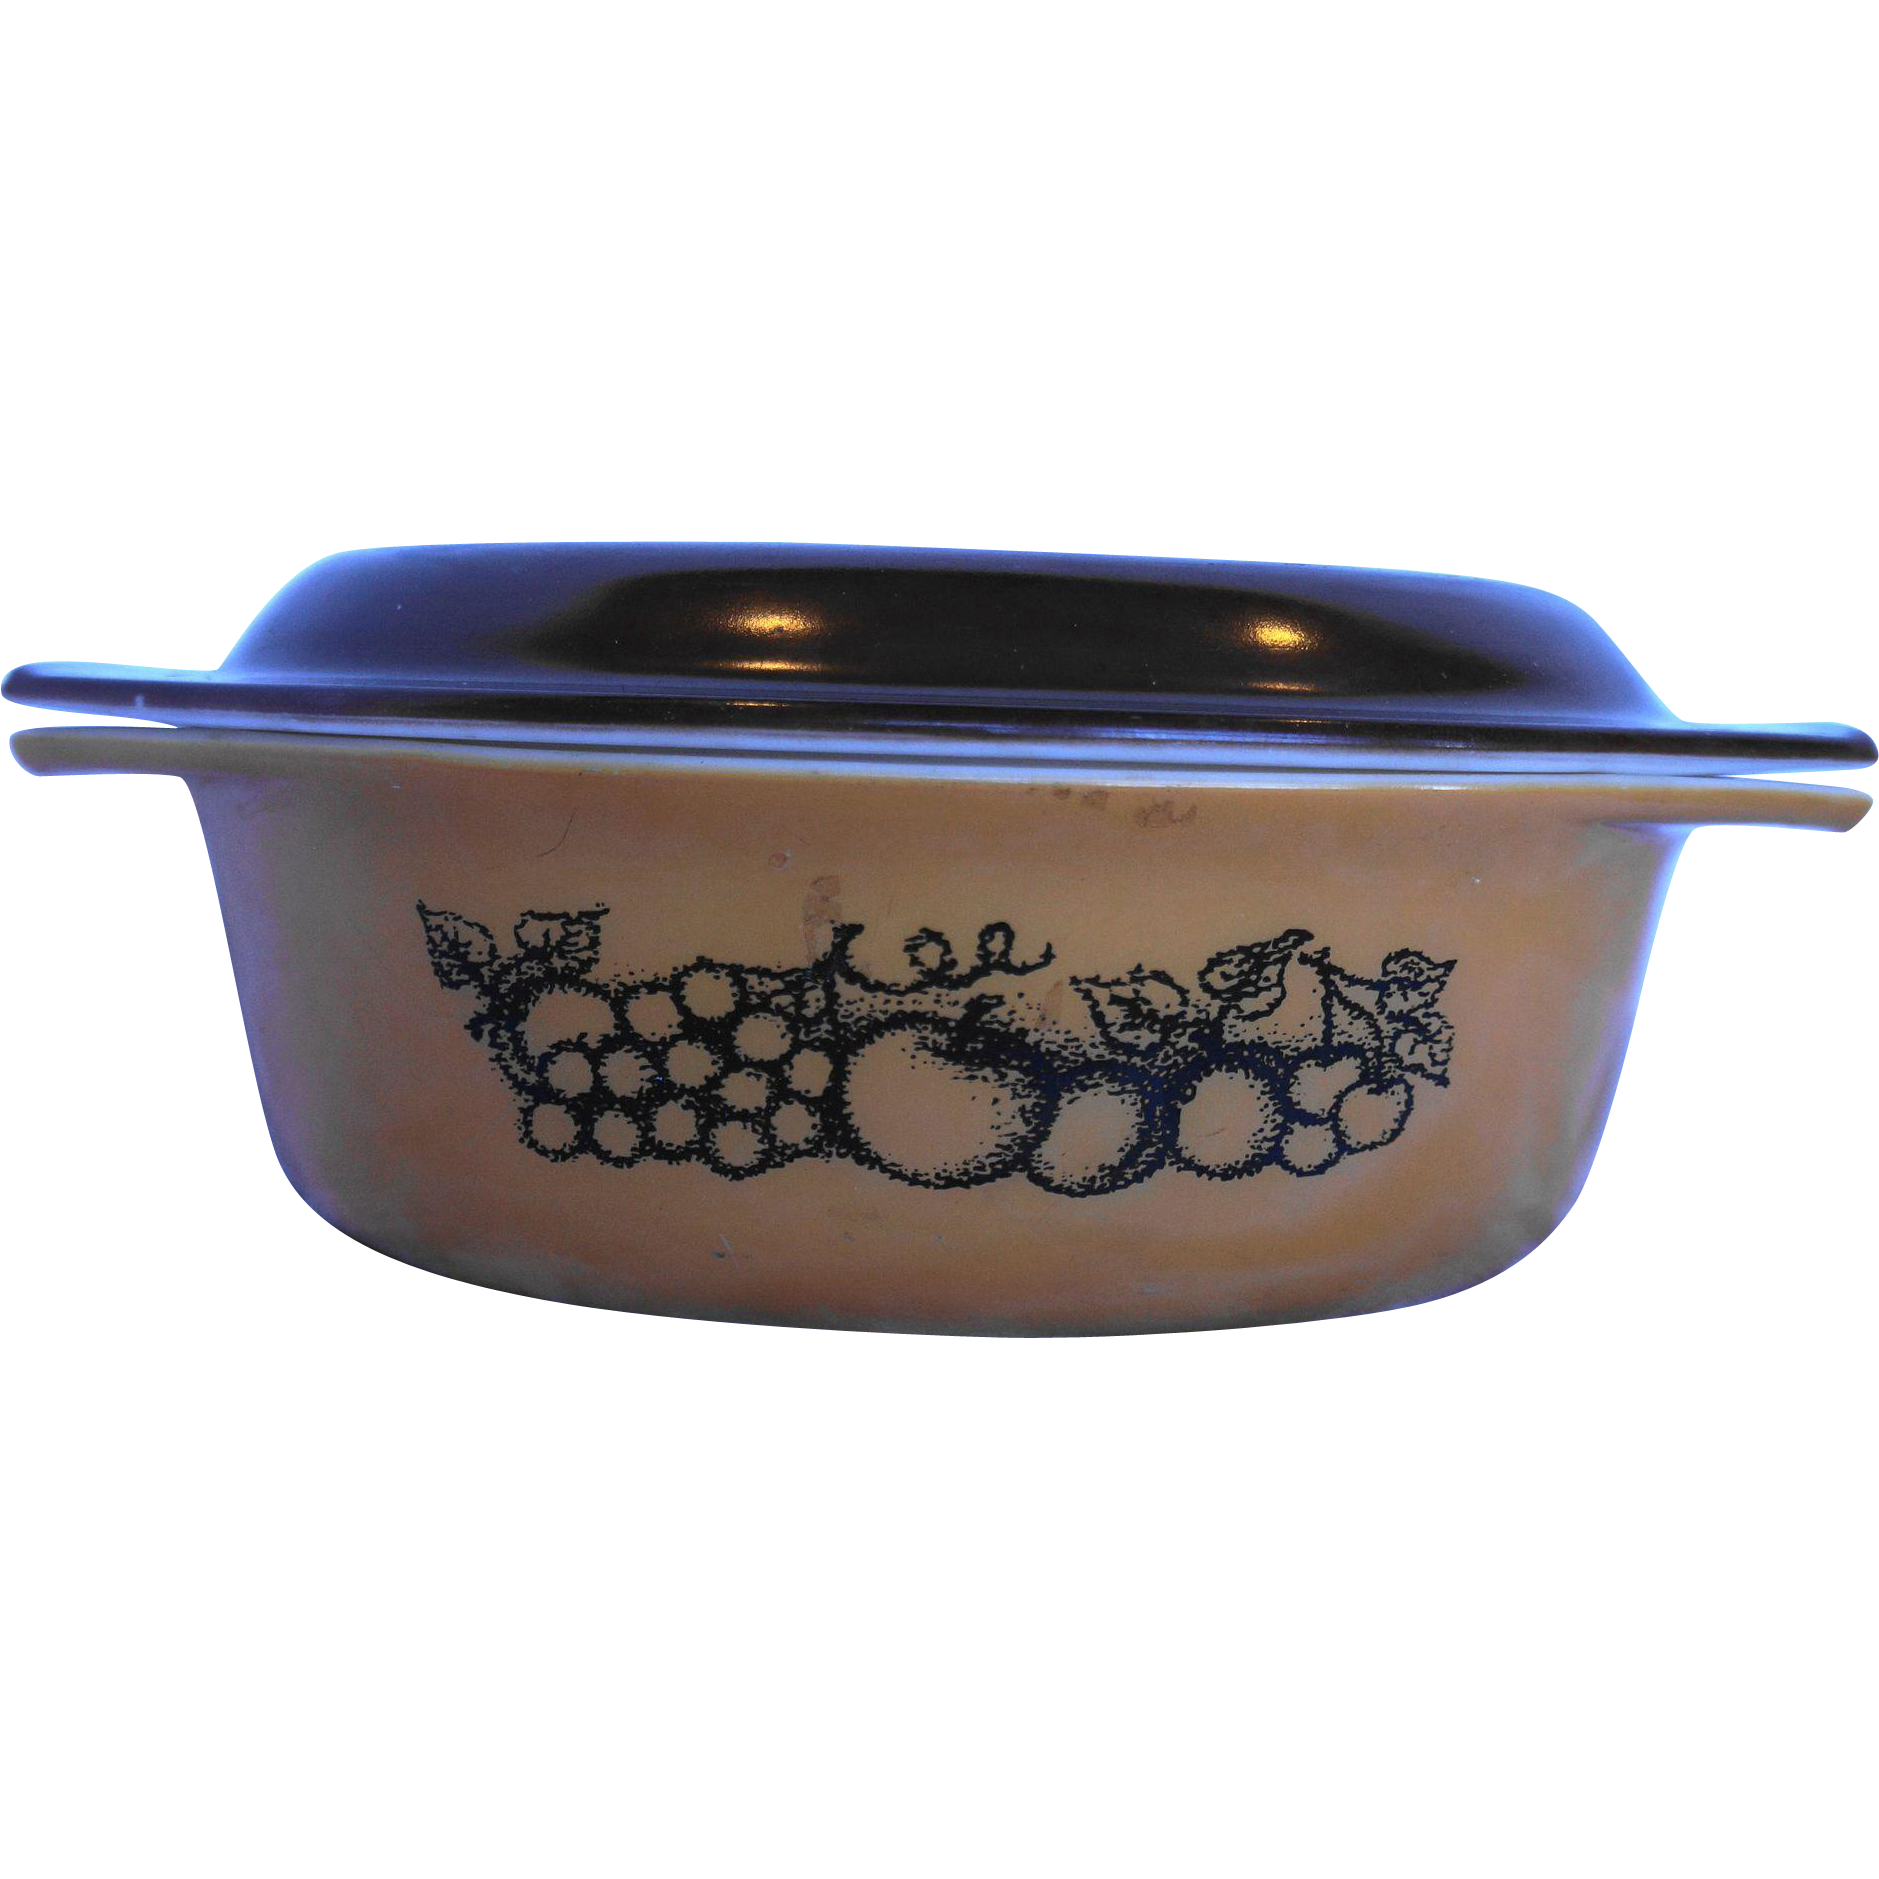 Pyrex Old Orchard Oval Casserole With Lid 1 1/2 Qt Brown Fruit